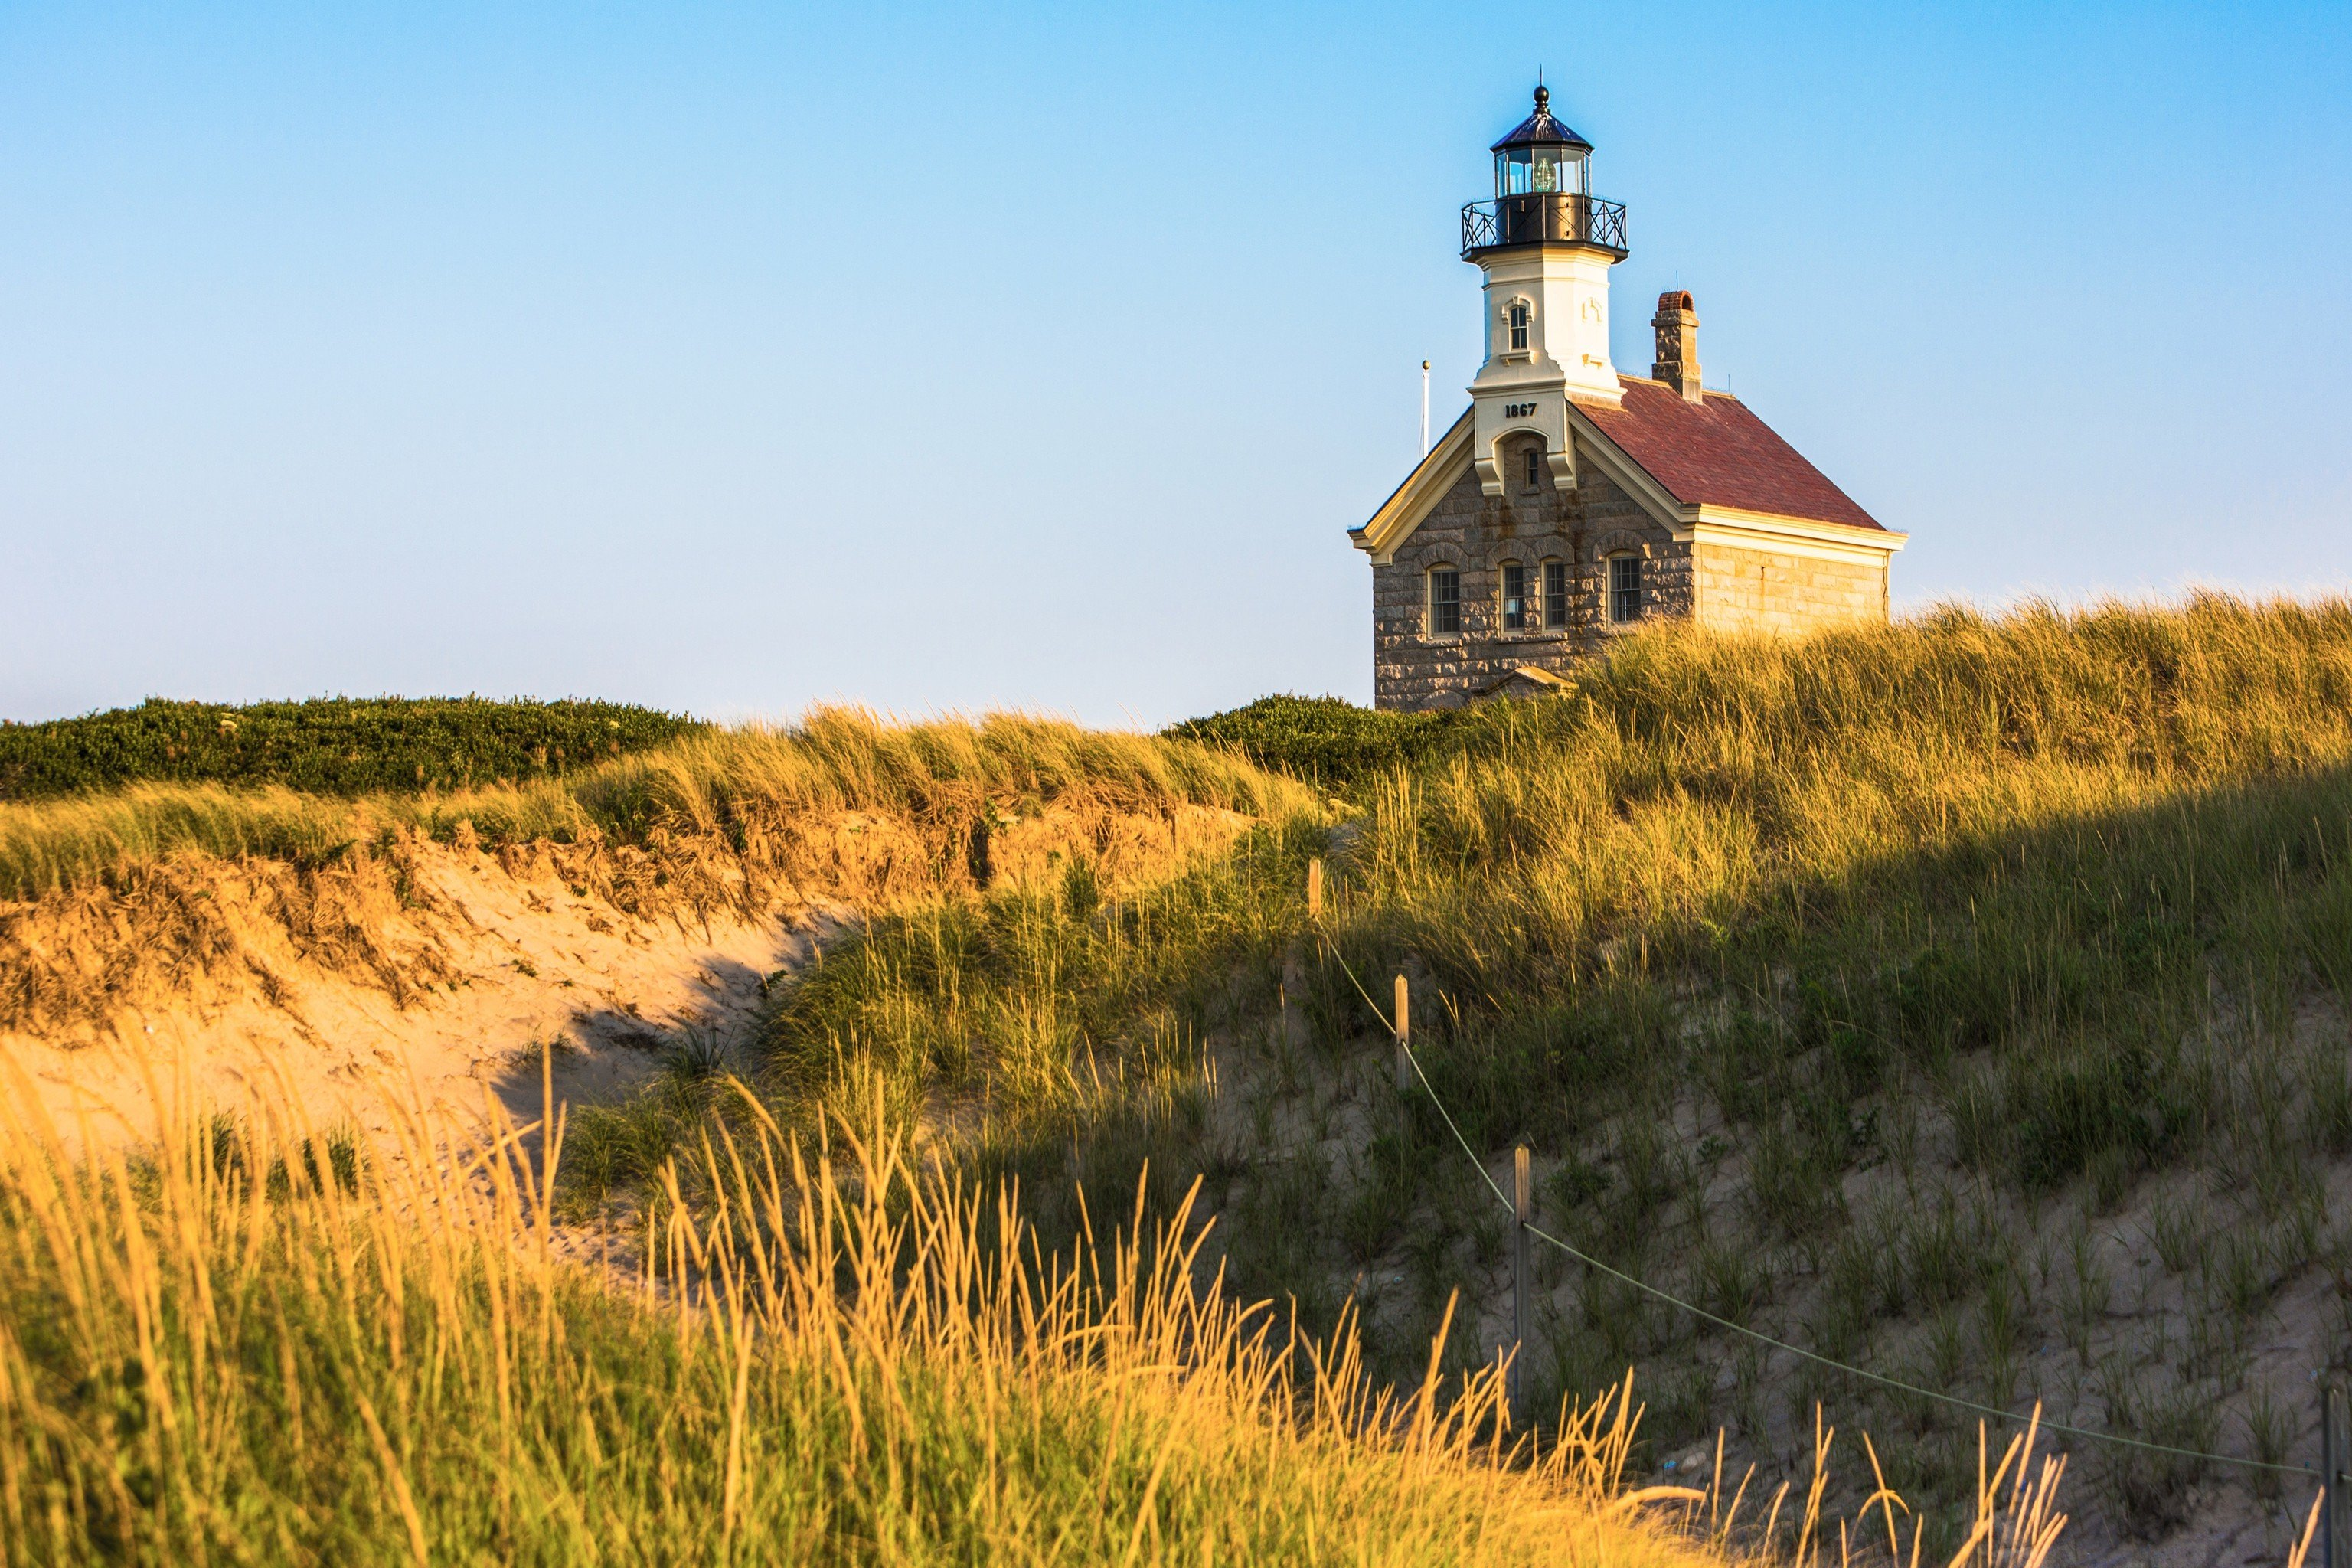 Jetsetter Guides grass outdoor sky tower lighthouse field prairie Coast hill rural area plant landscape tall grassy lush